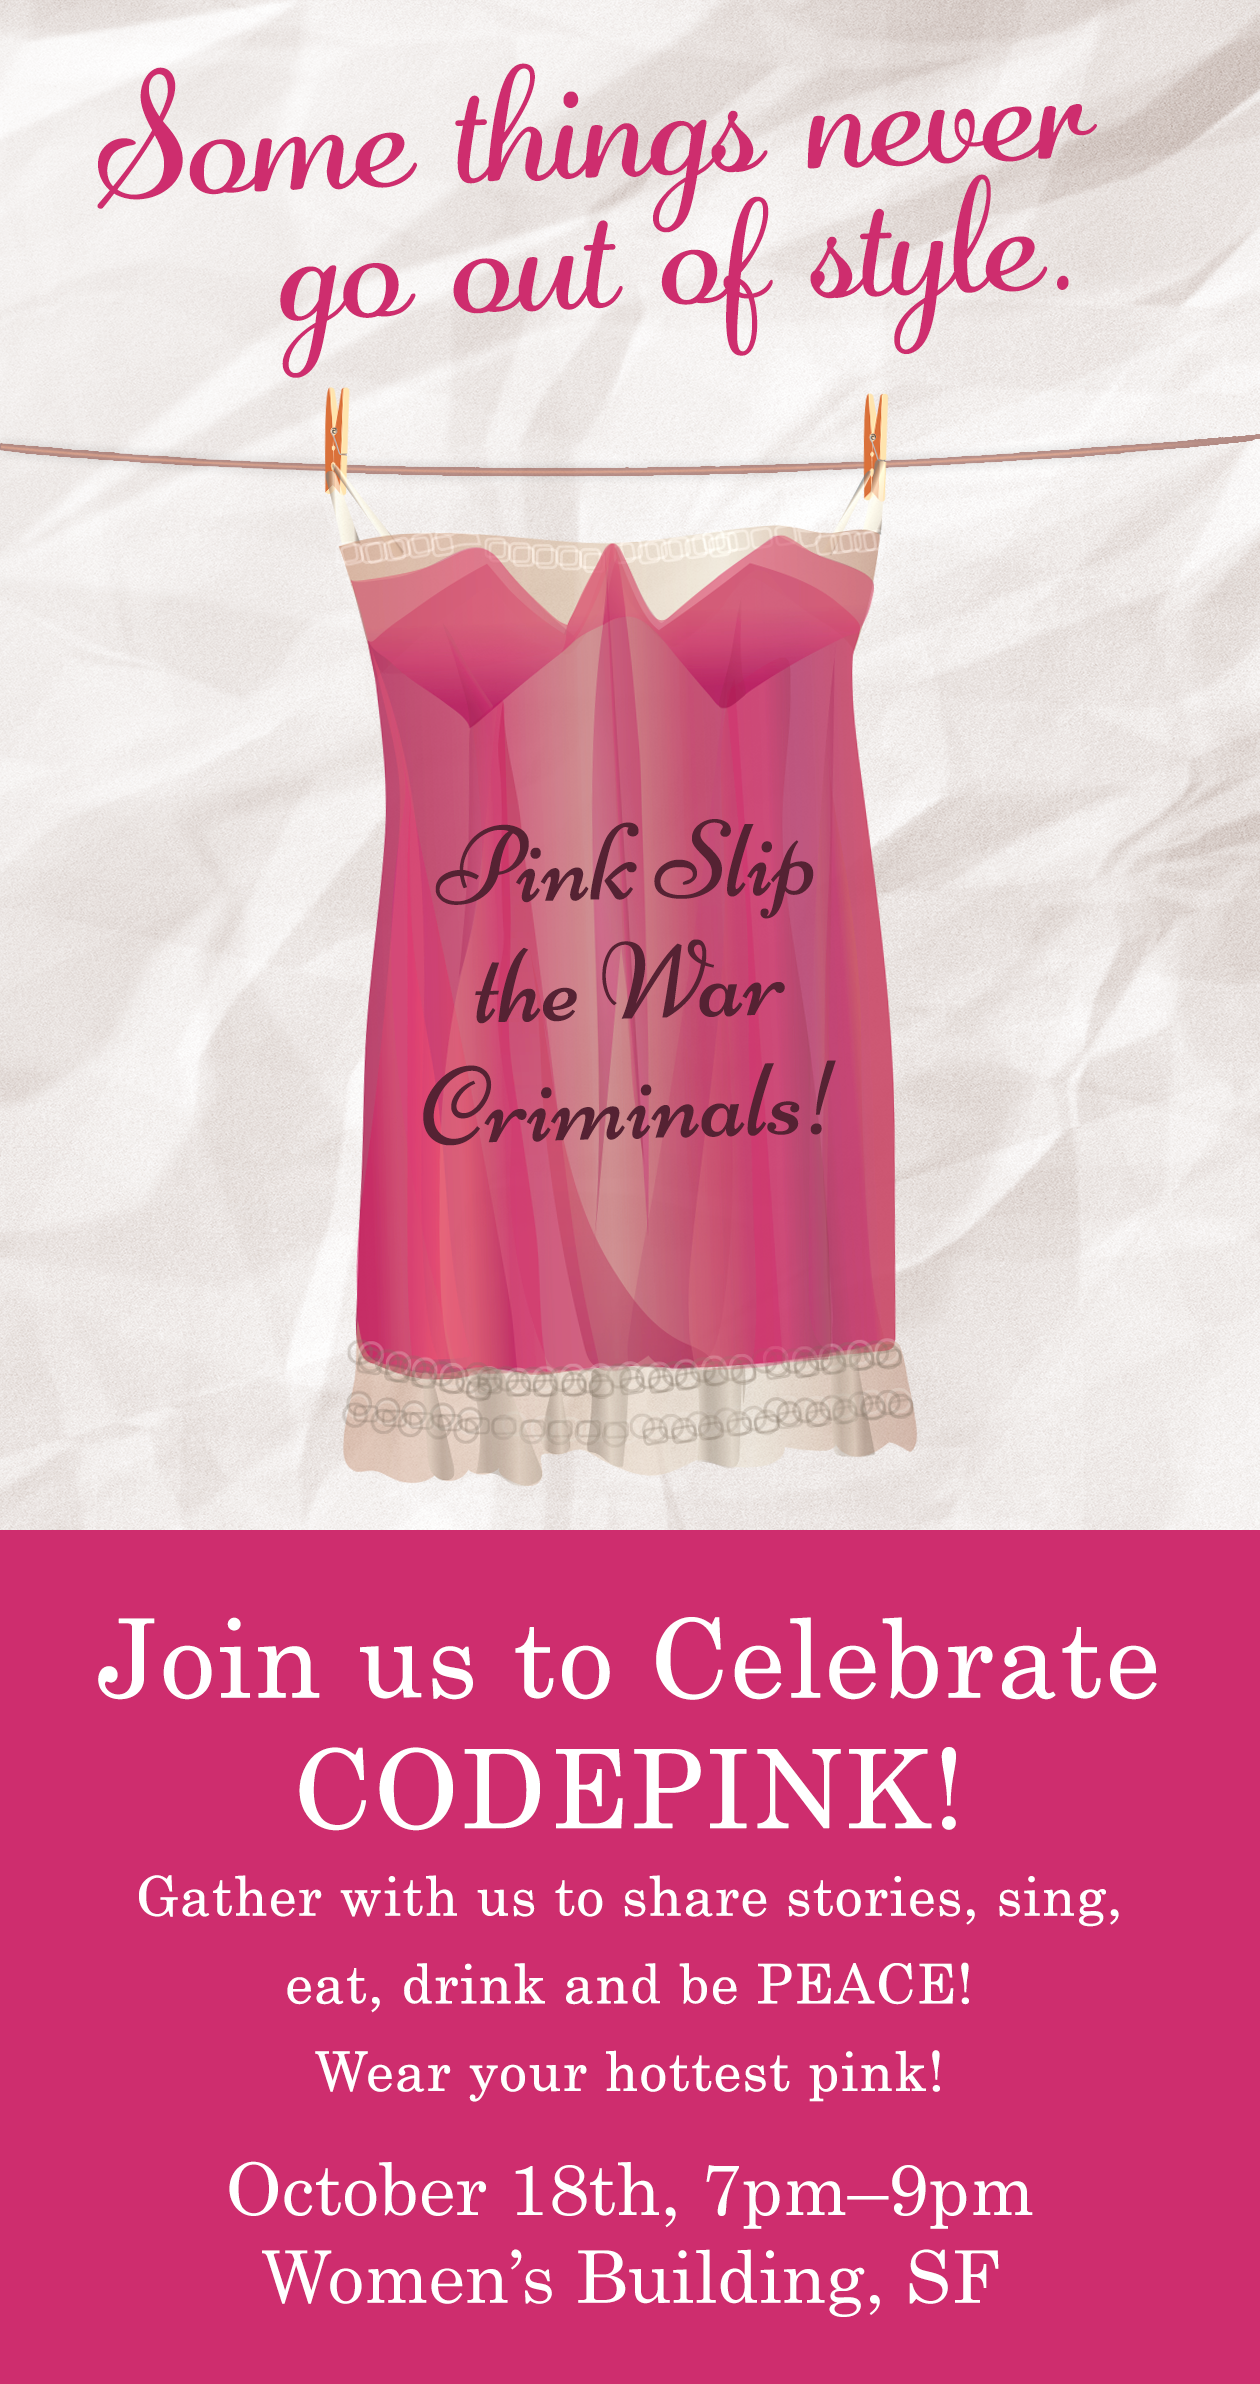 Celebrate CODEPINK! @ Women's Building | San Francisco | California | United States